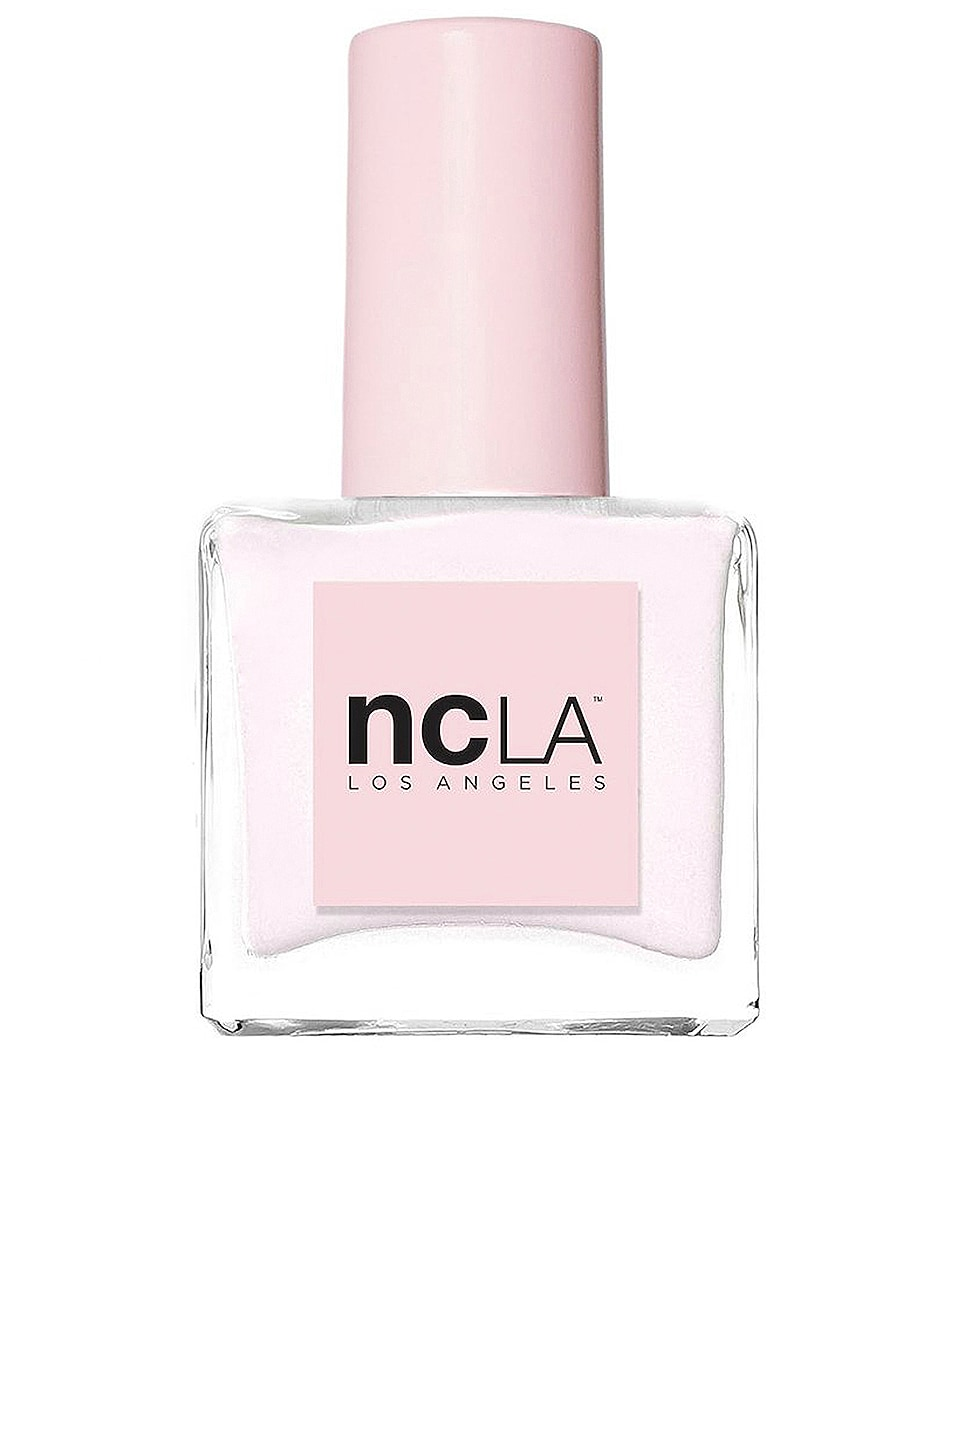 NCLA Nail Lacquer in Rose Sheer